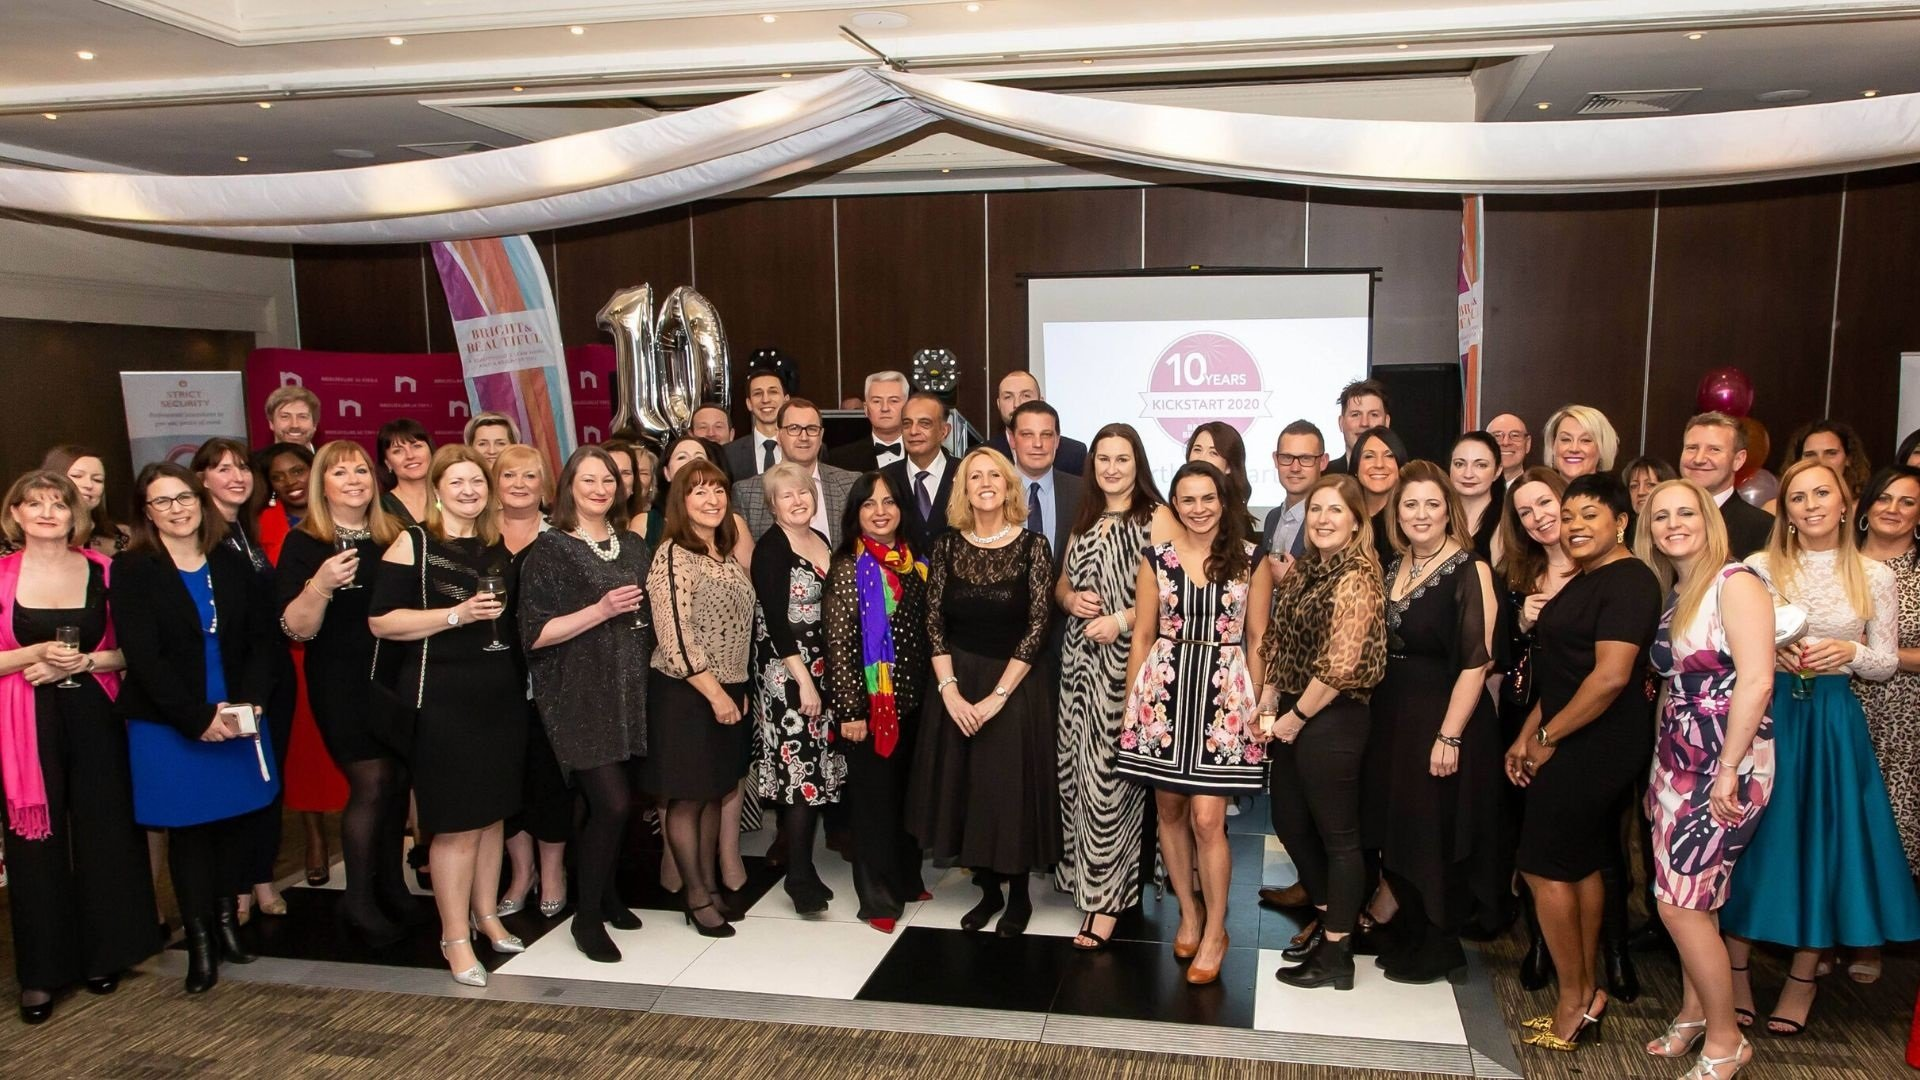 Bright & Beautiful national franchise network celebrates 10 years in franchising